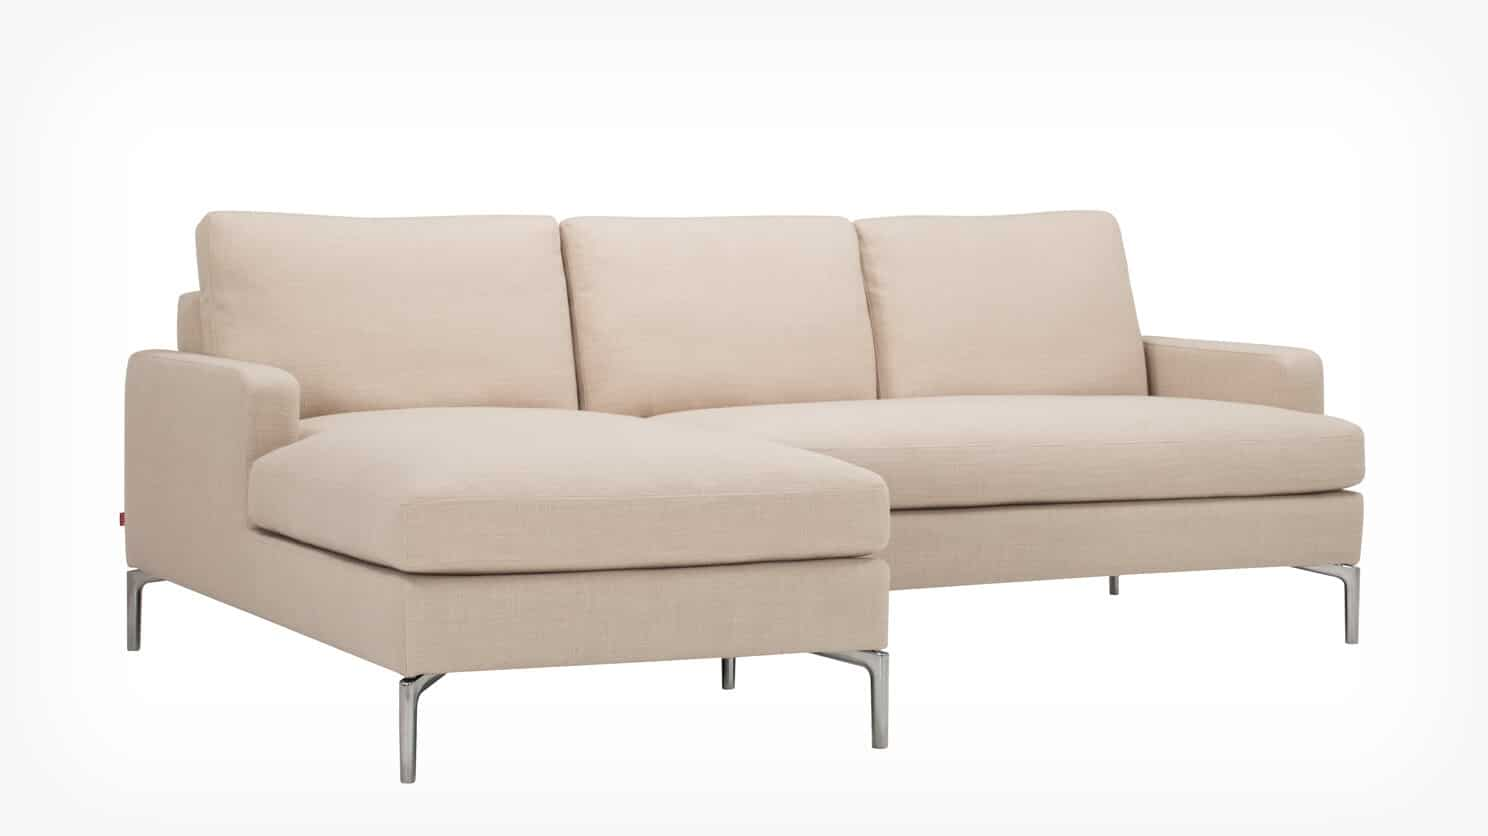 31127 sl sc 2 sectionals eve 2 piece w chaise lindy natural